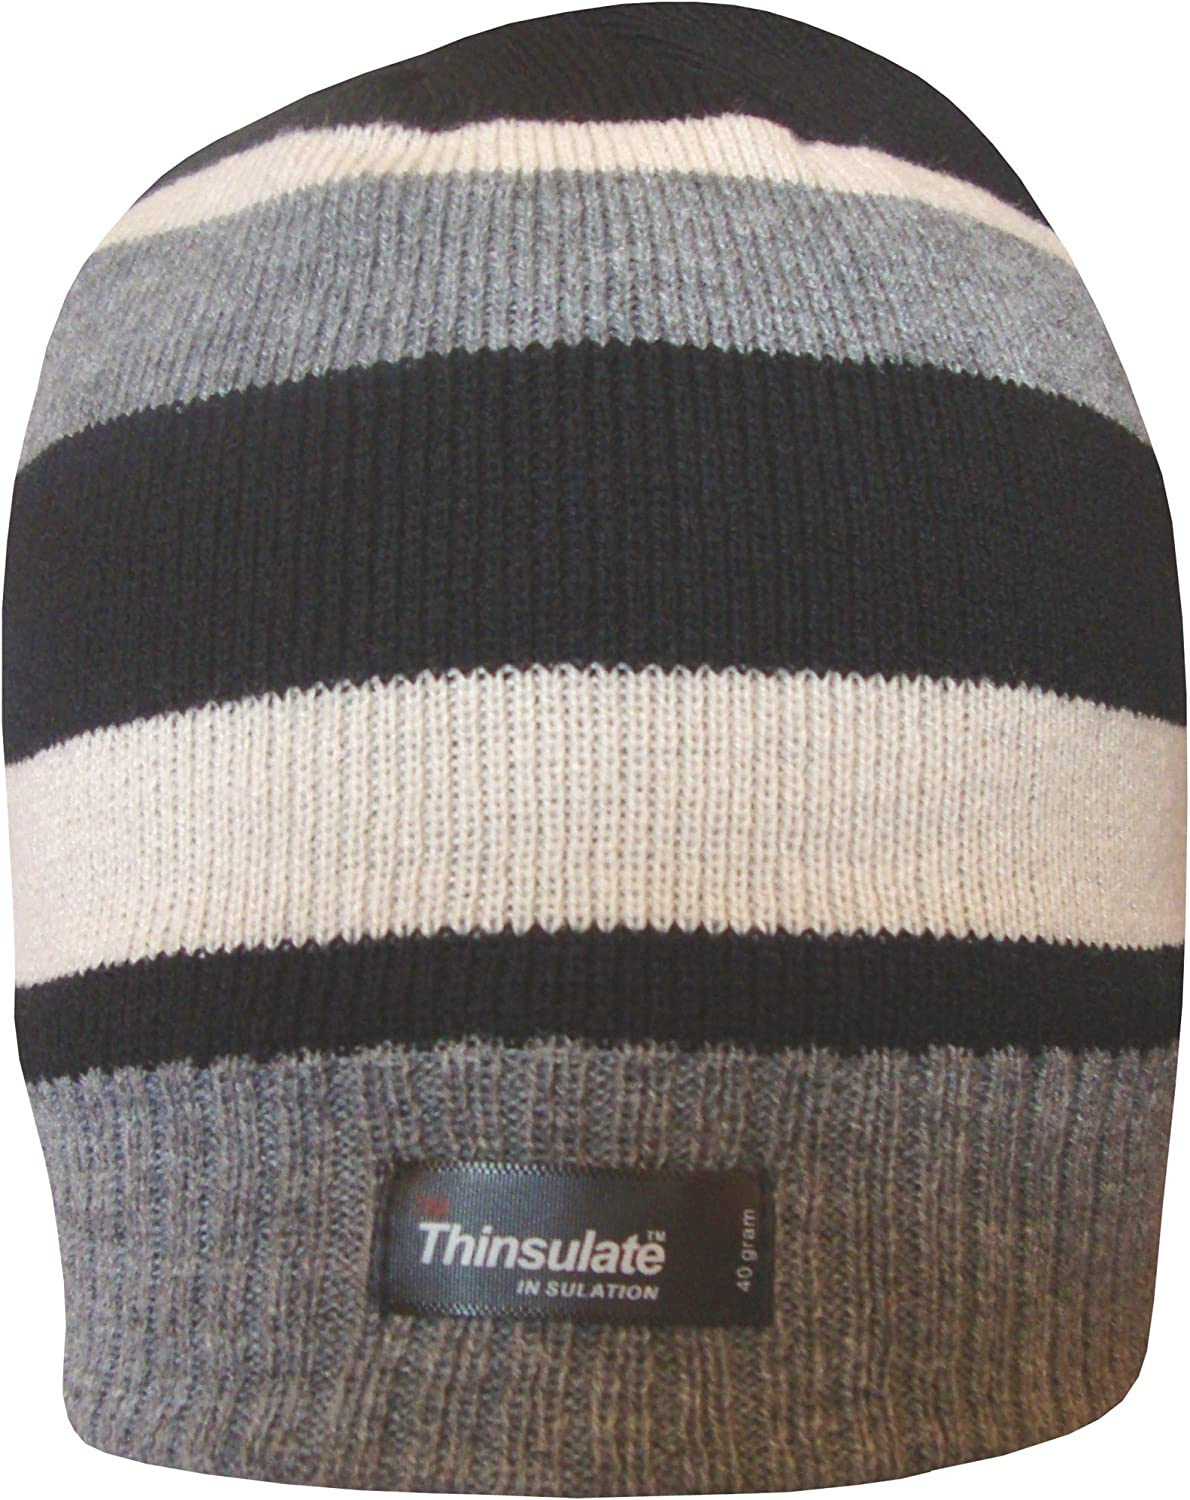 TeddyTs Boys Striped Design Thermal Knit Fleece Lined Thinsulate Winter Beanie Hat